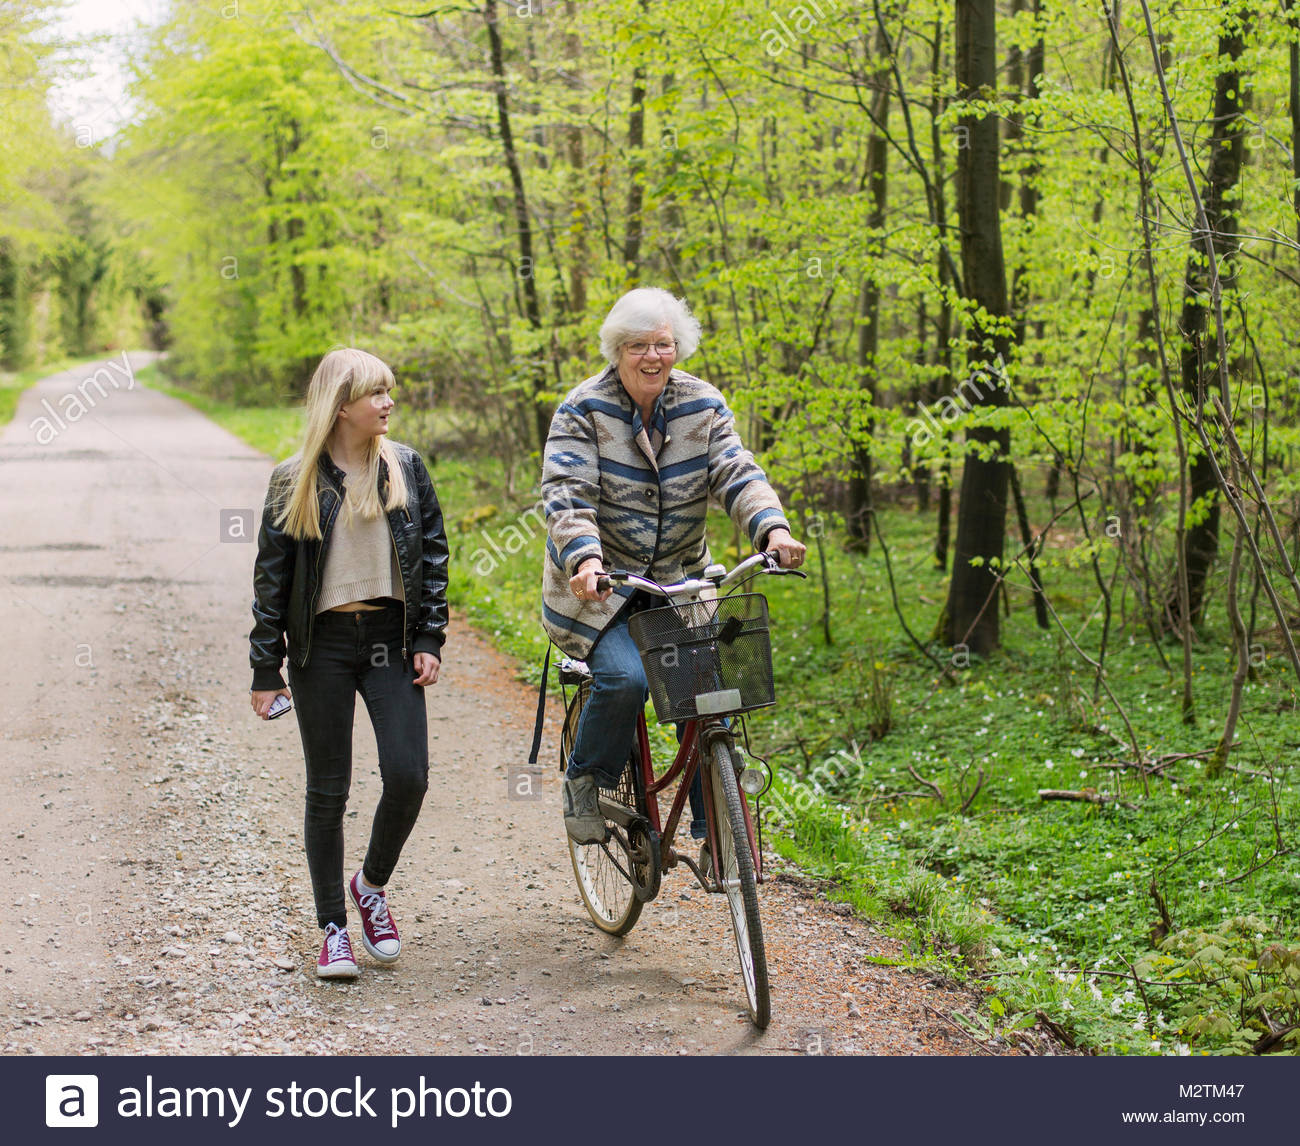 Grandmother and granddaughter with bicycle on forest road - Stock Image